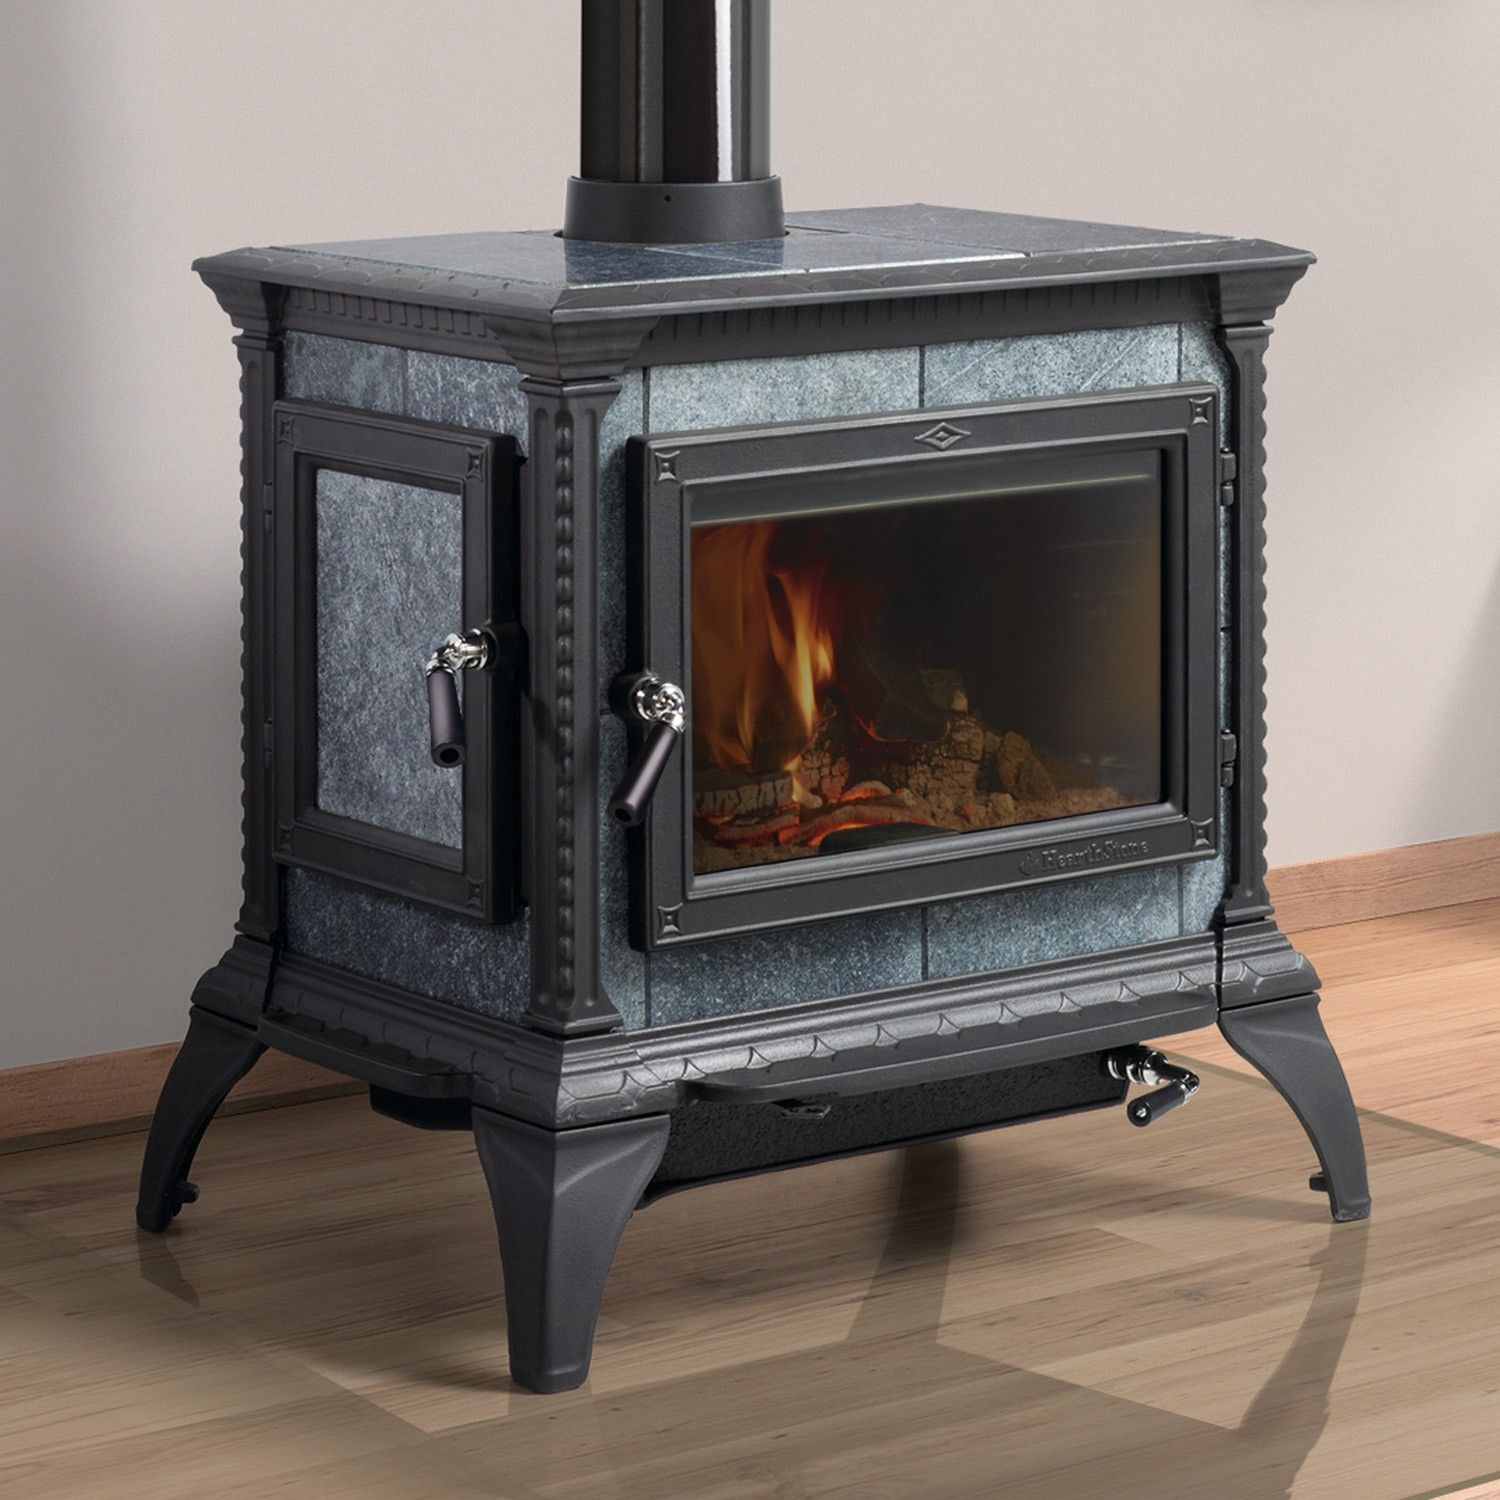 Hearthstone 39 S Heritage Soapstone Wood Stove Shown With Polished Soapstone And Matte Black